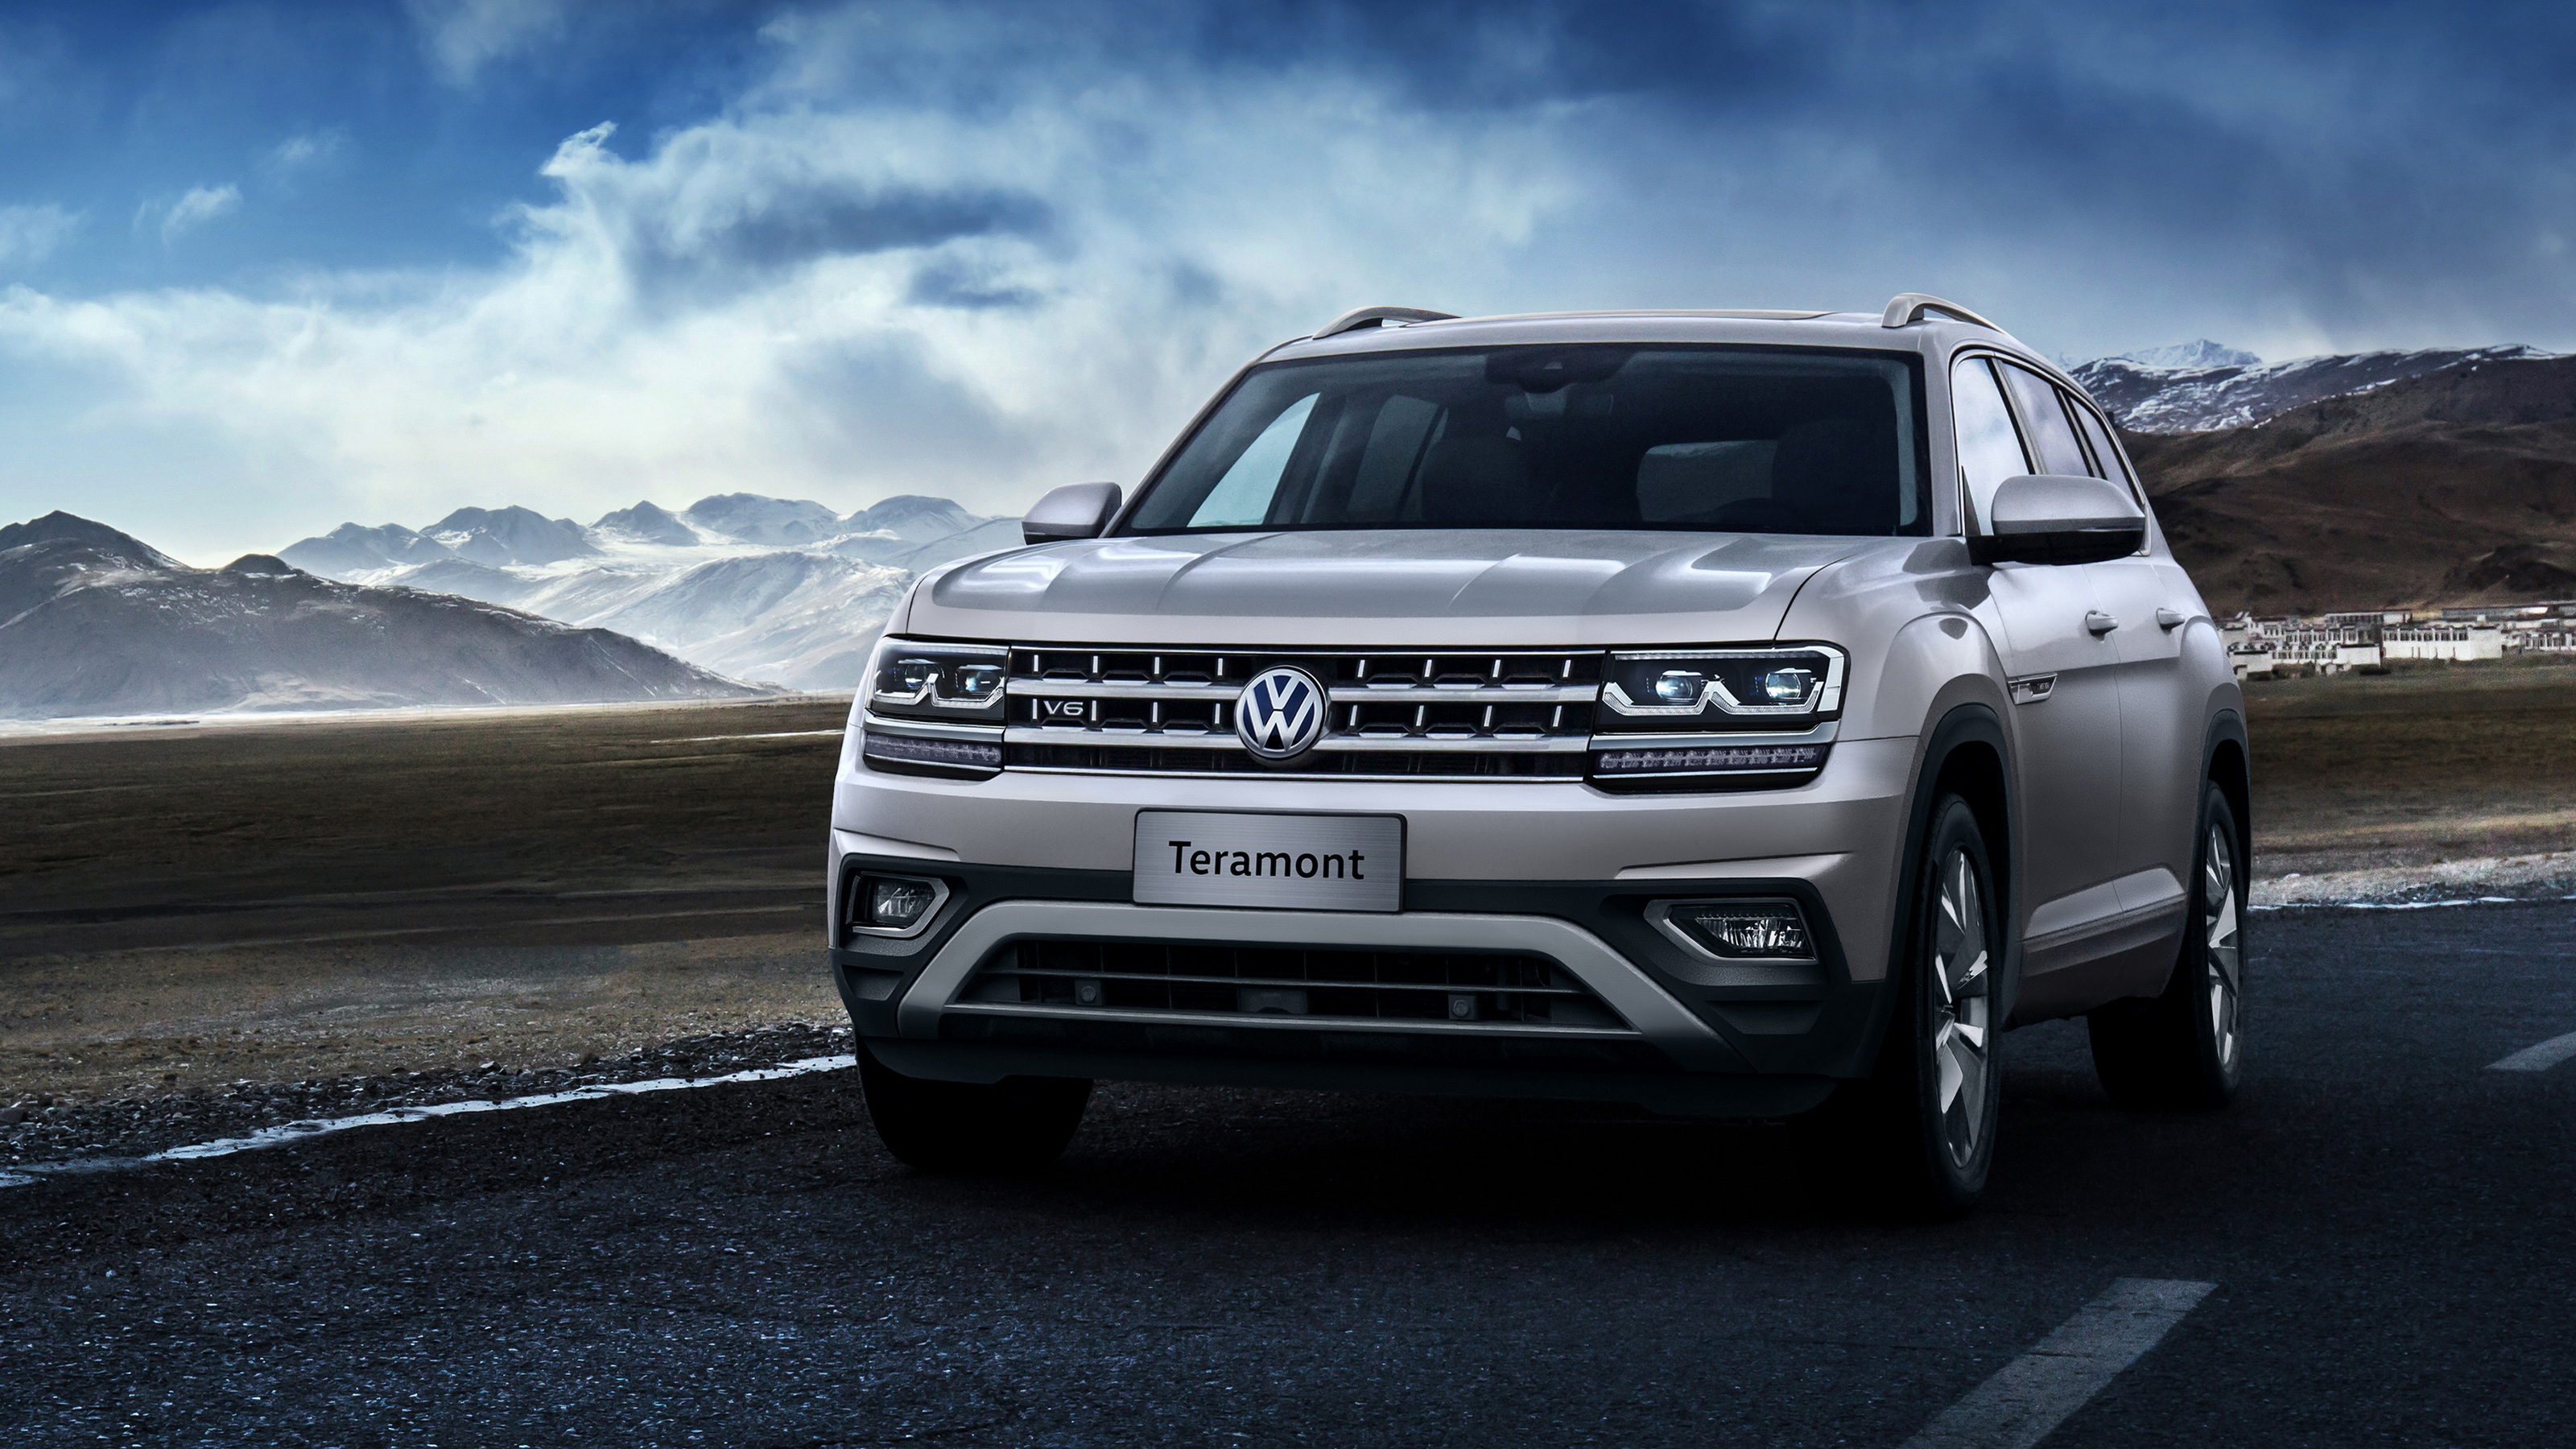 2019 Volkswagen Teramont Wallpaper HD Car Wallpapers 3200x1800